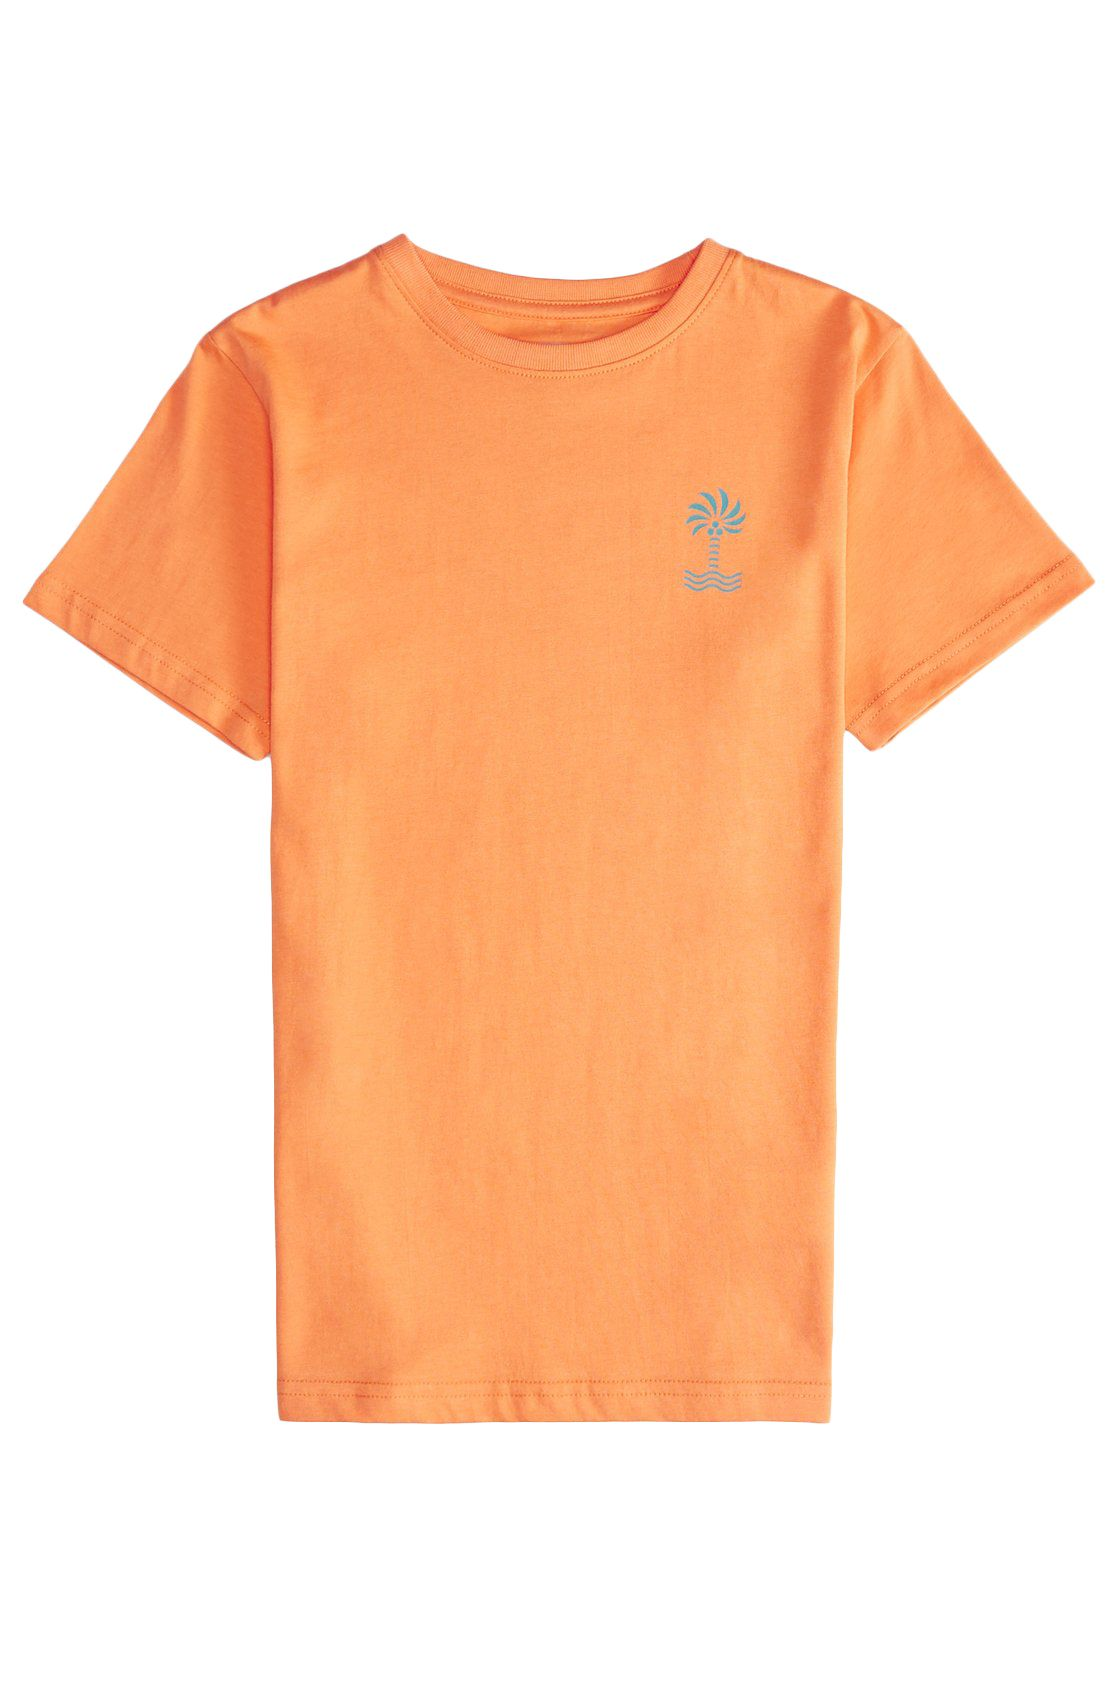 T-Shirt Billabong PALM SPIN Tangerine